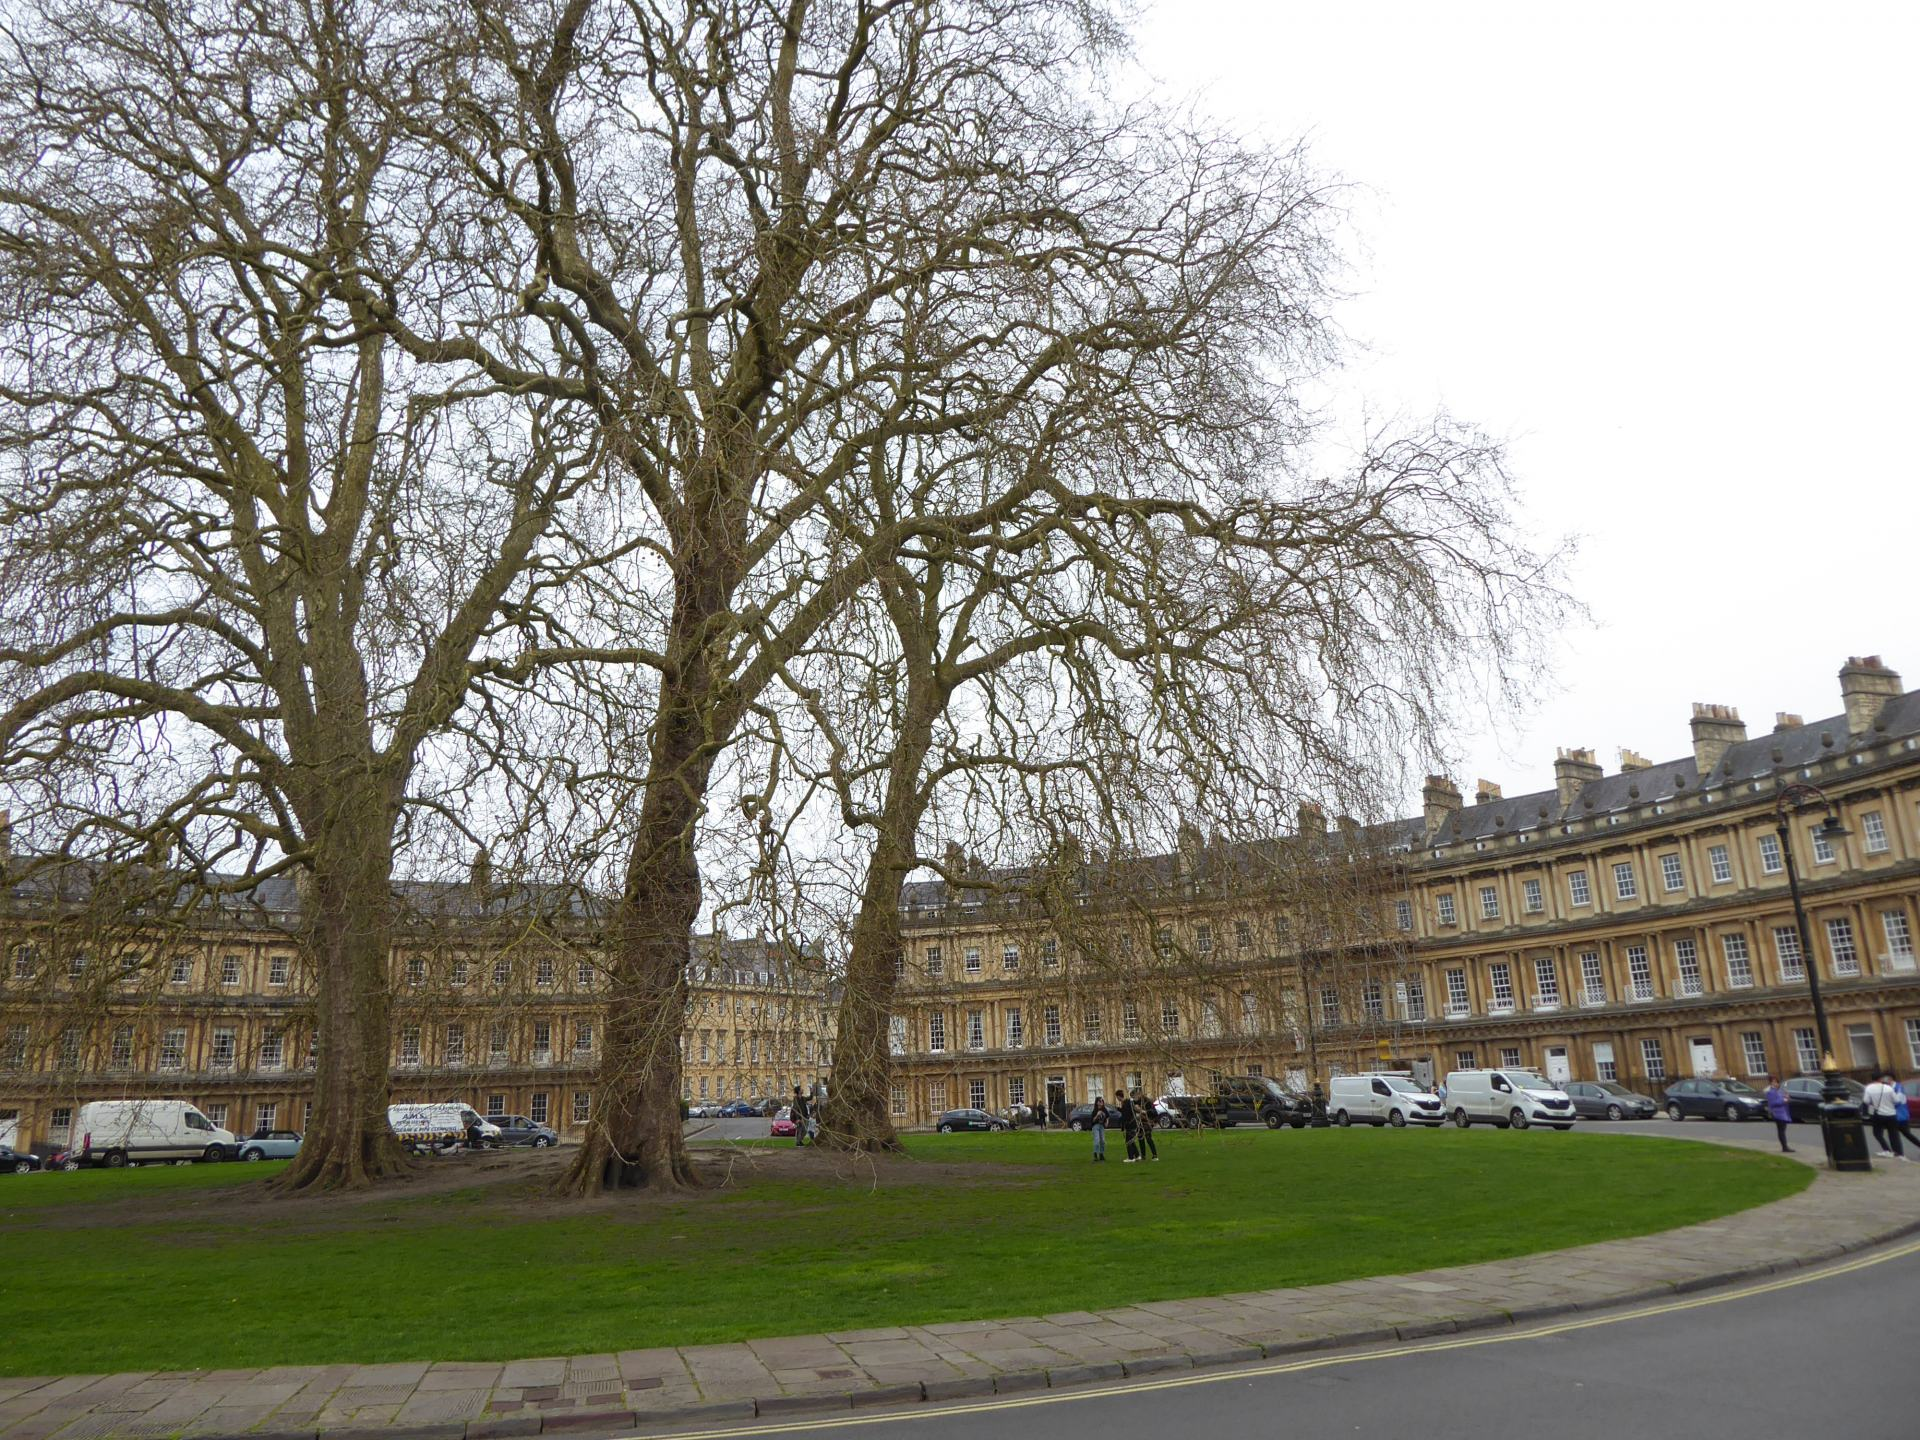 View of the green area in the middle of the Circus, showing 3 leafless tree's with some of the buildings in the background.